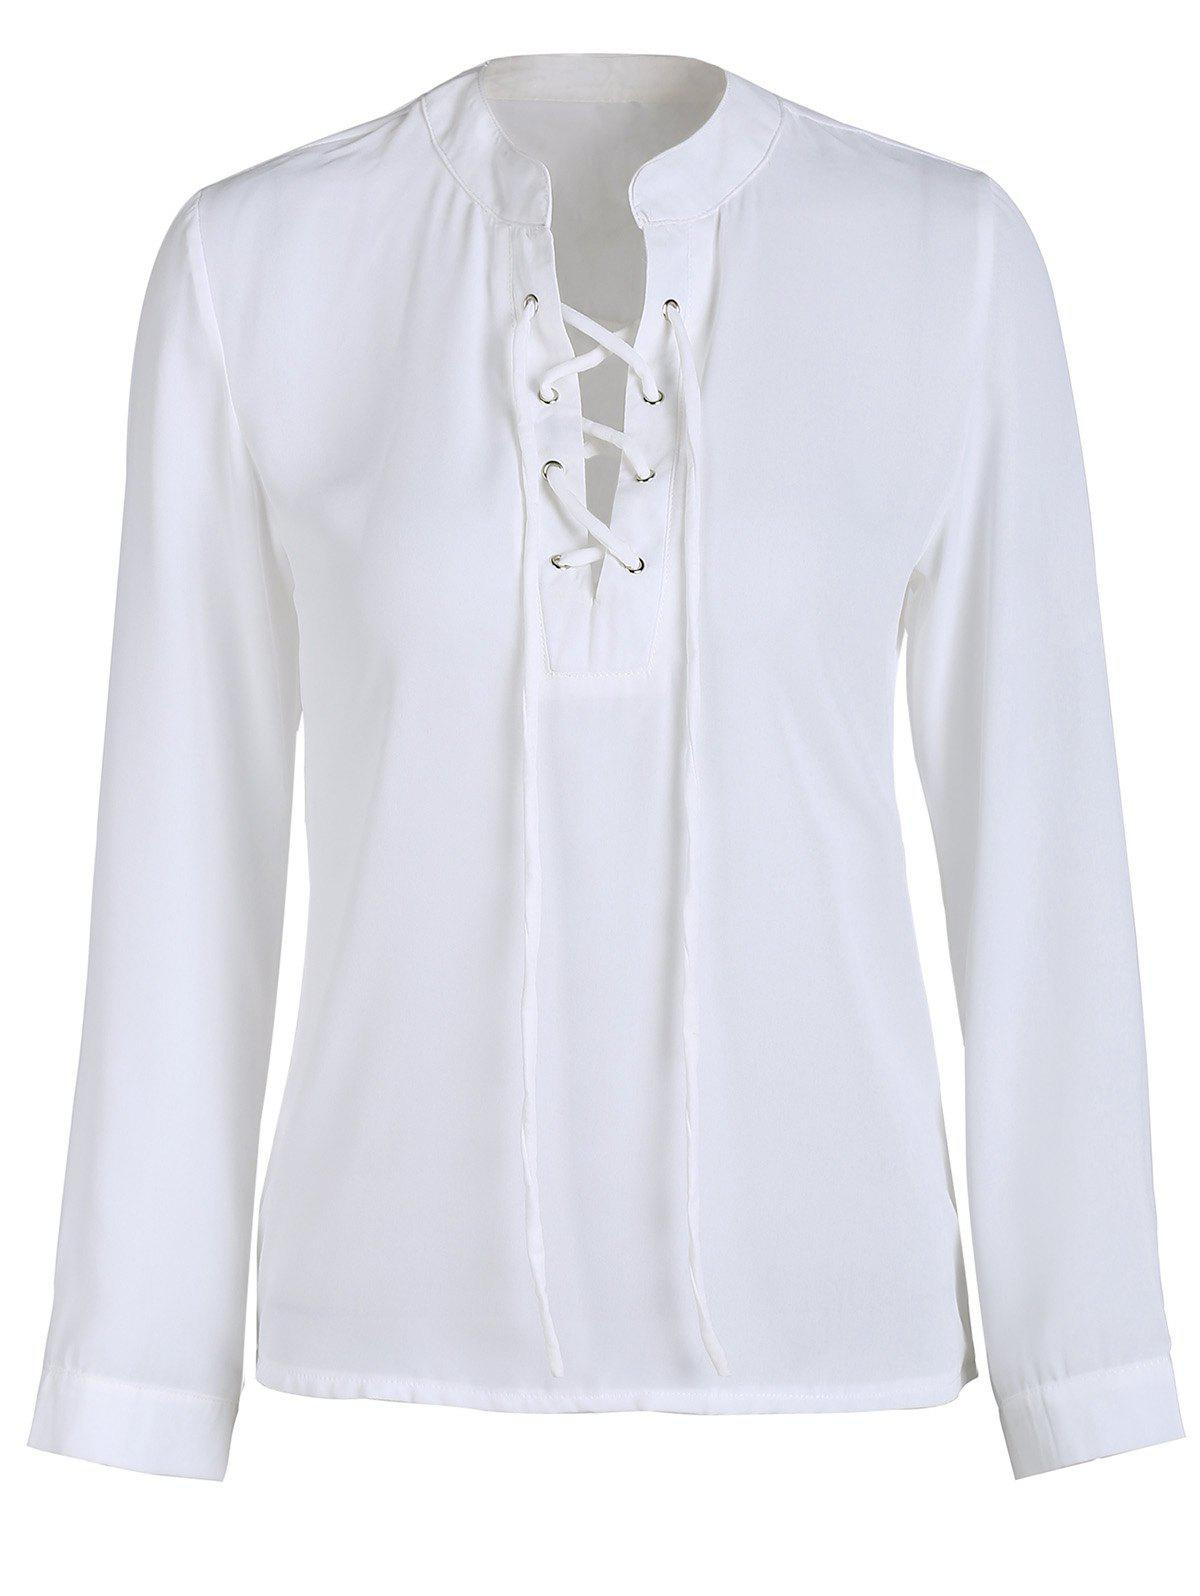 Trendy V-Neck Lace-Up Chiffon Long Sleeve Blouse For Women - WHITE XL